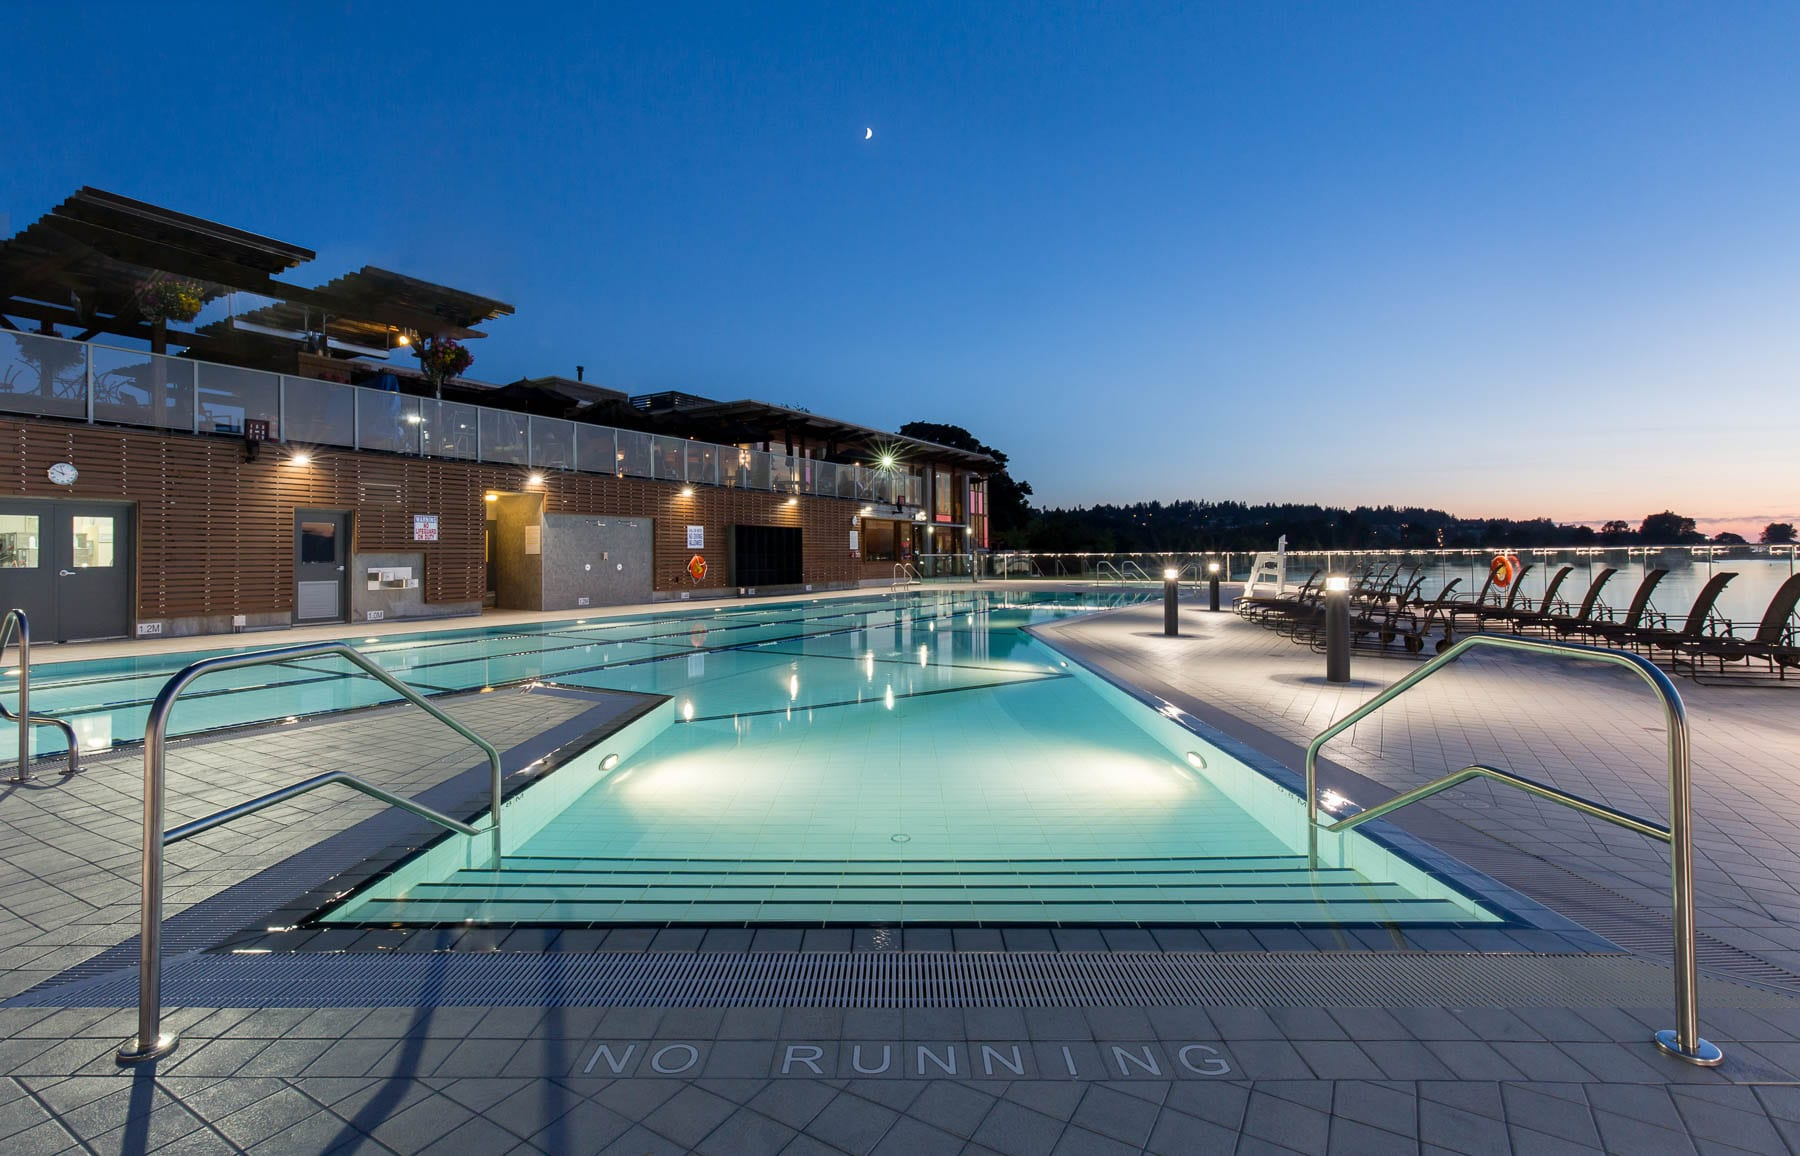 Renovated point grey outdoor swimming pool near night time